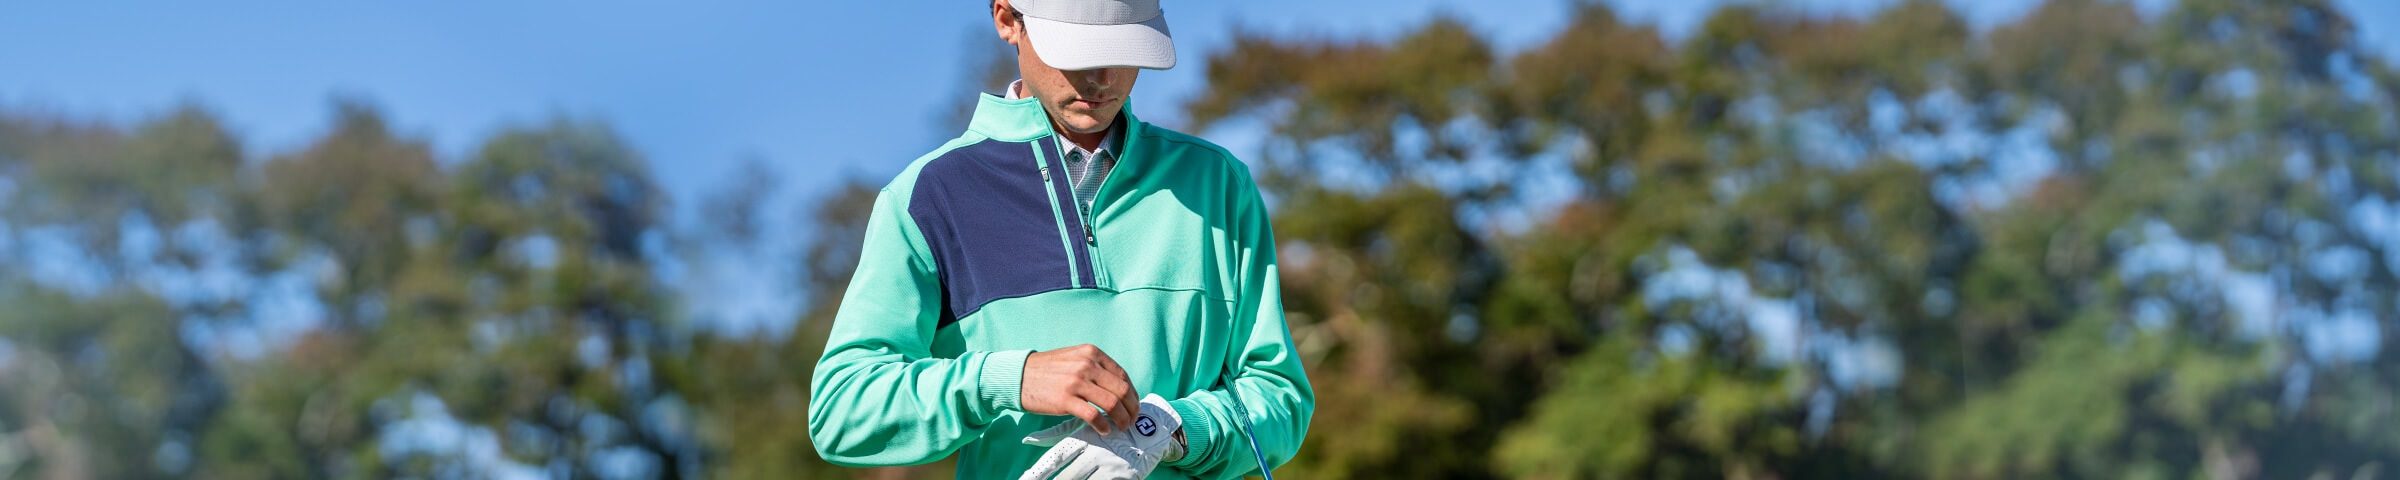 FootJoy Men's Golf Apparel - Base & Mid-Layers